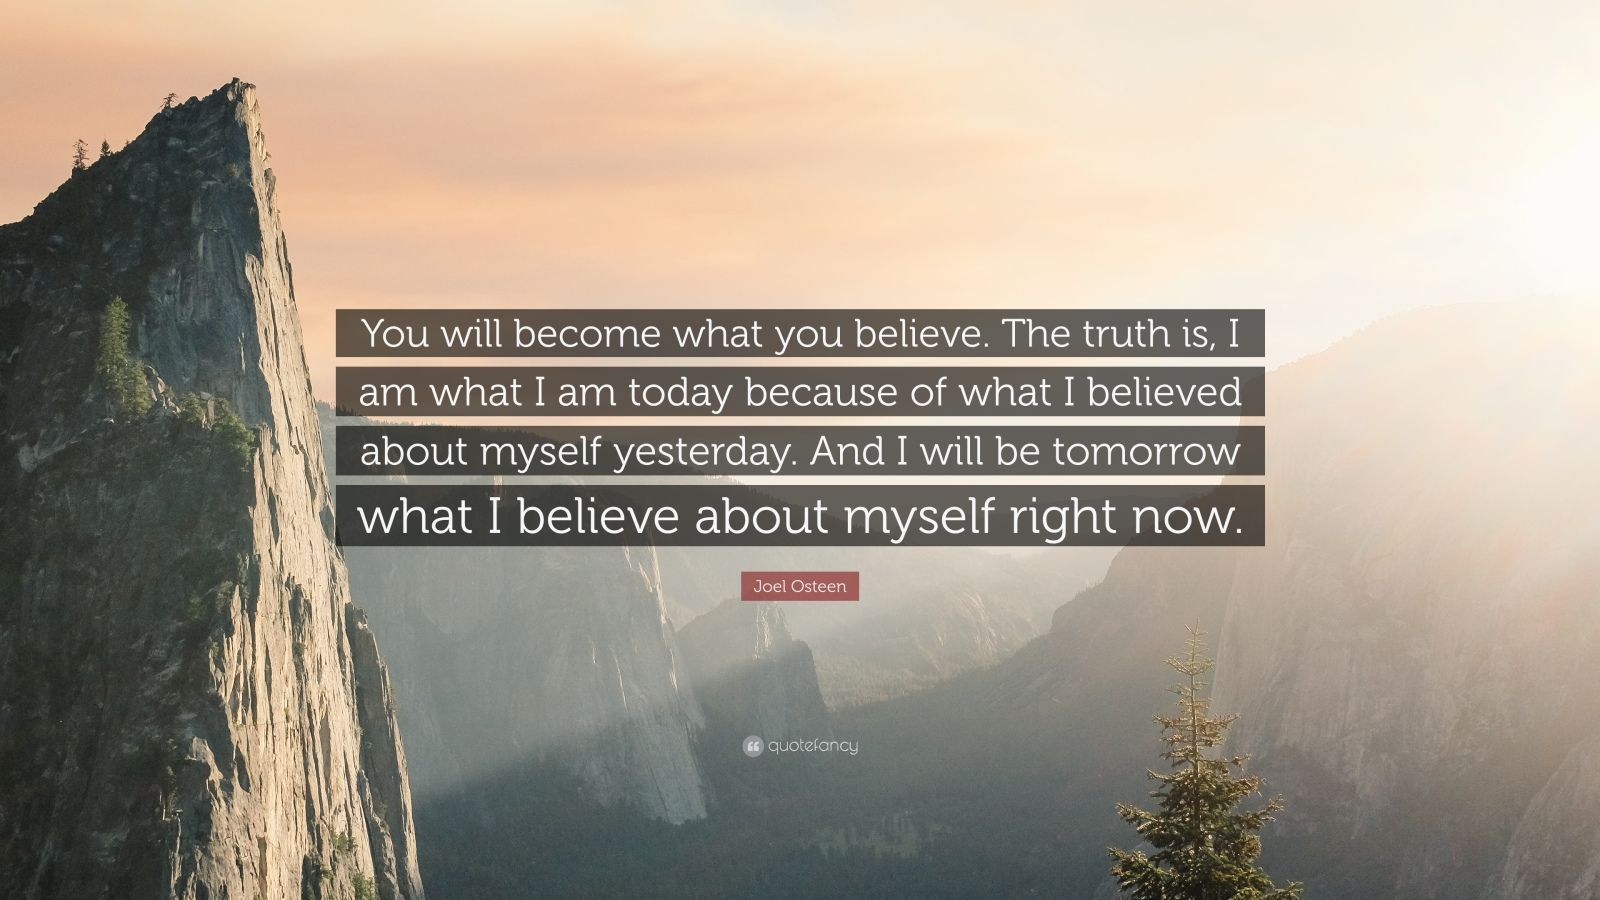 """Joel Osteen Quote: """"You will become what you believe. The truth is, I am what I am today because of what I believed about myself yesterday. And I will be tomorrow what I believe about myself right now."""""""